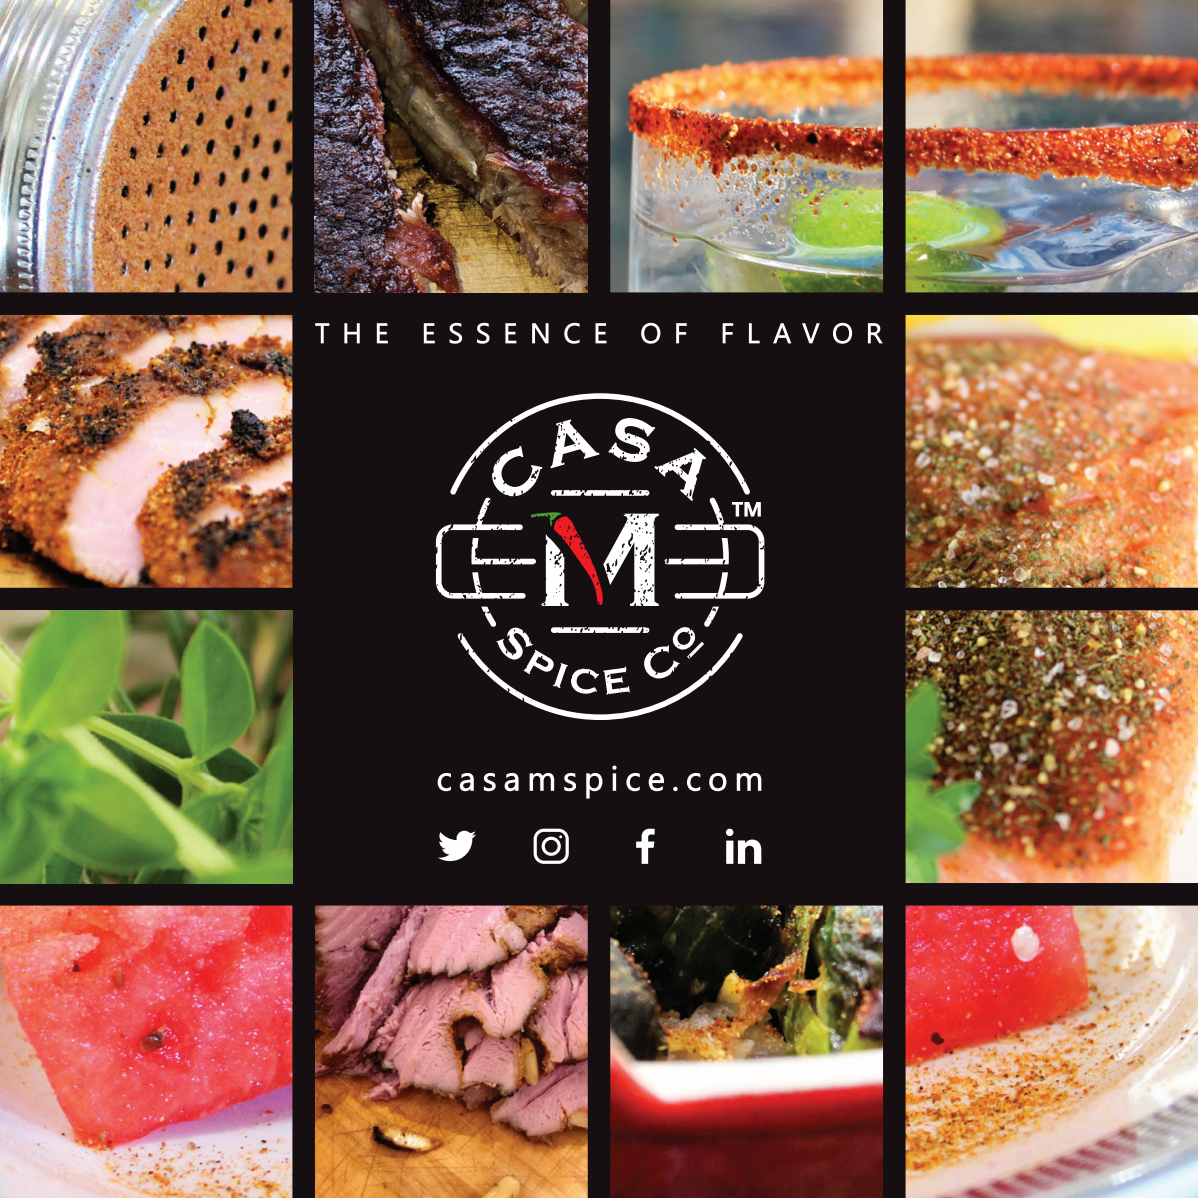 Stickers, Flyers, and Cards for Casa M Spice Co